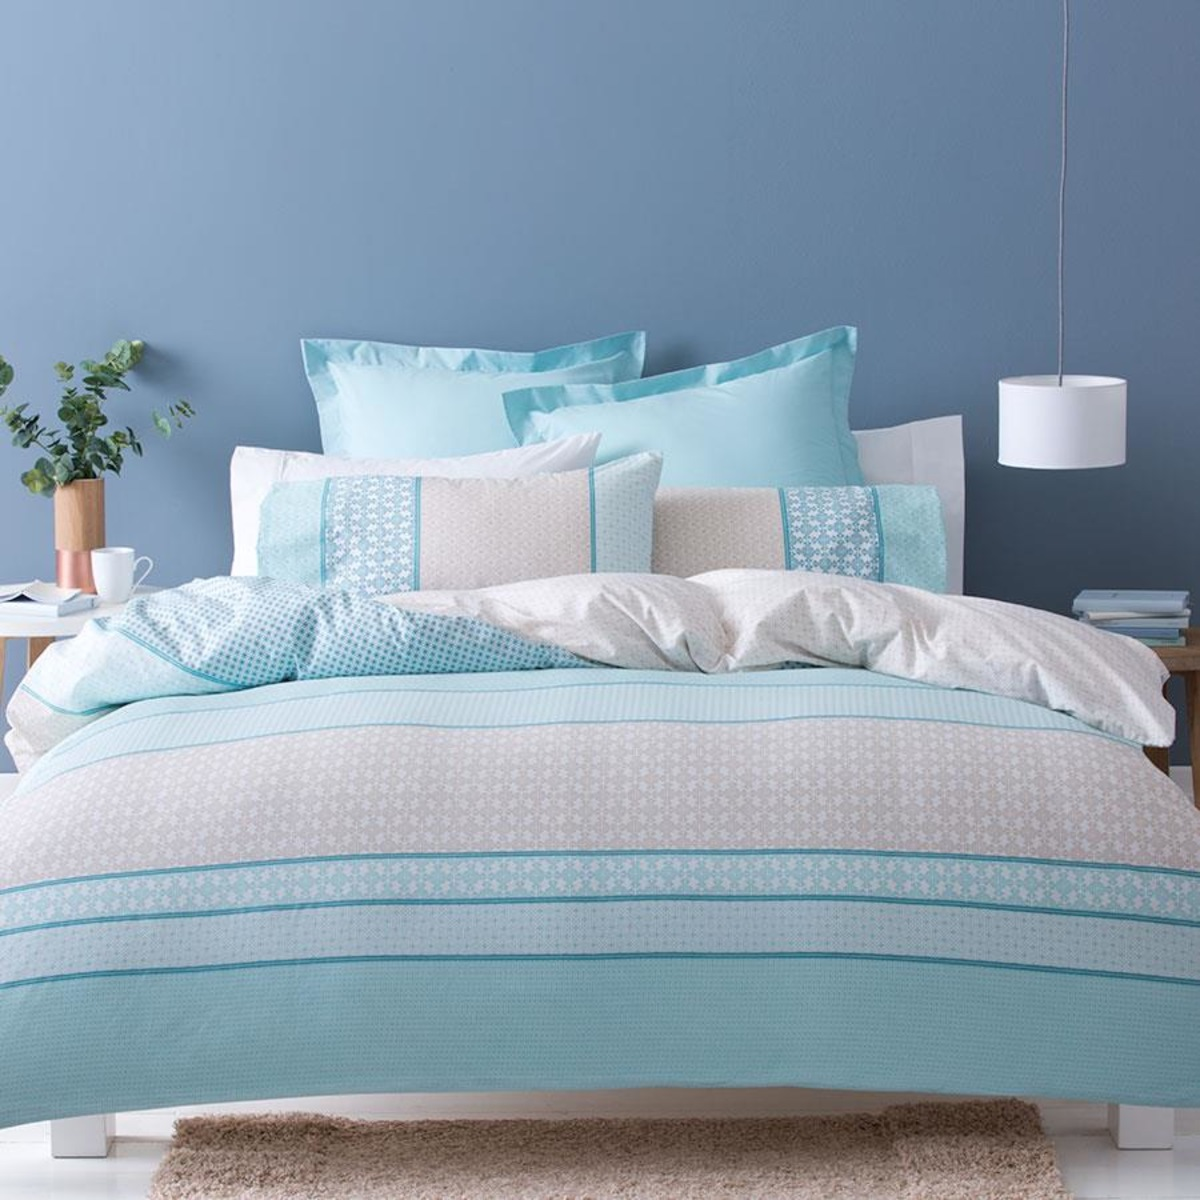 Kmart Coupon | Kmart Bed Sets | King Size Comforters Target